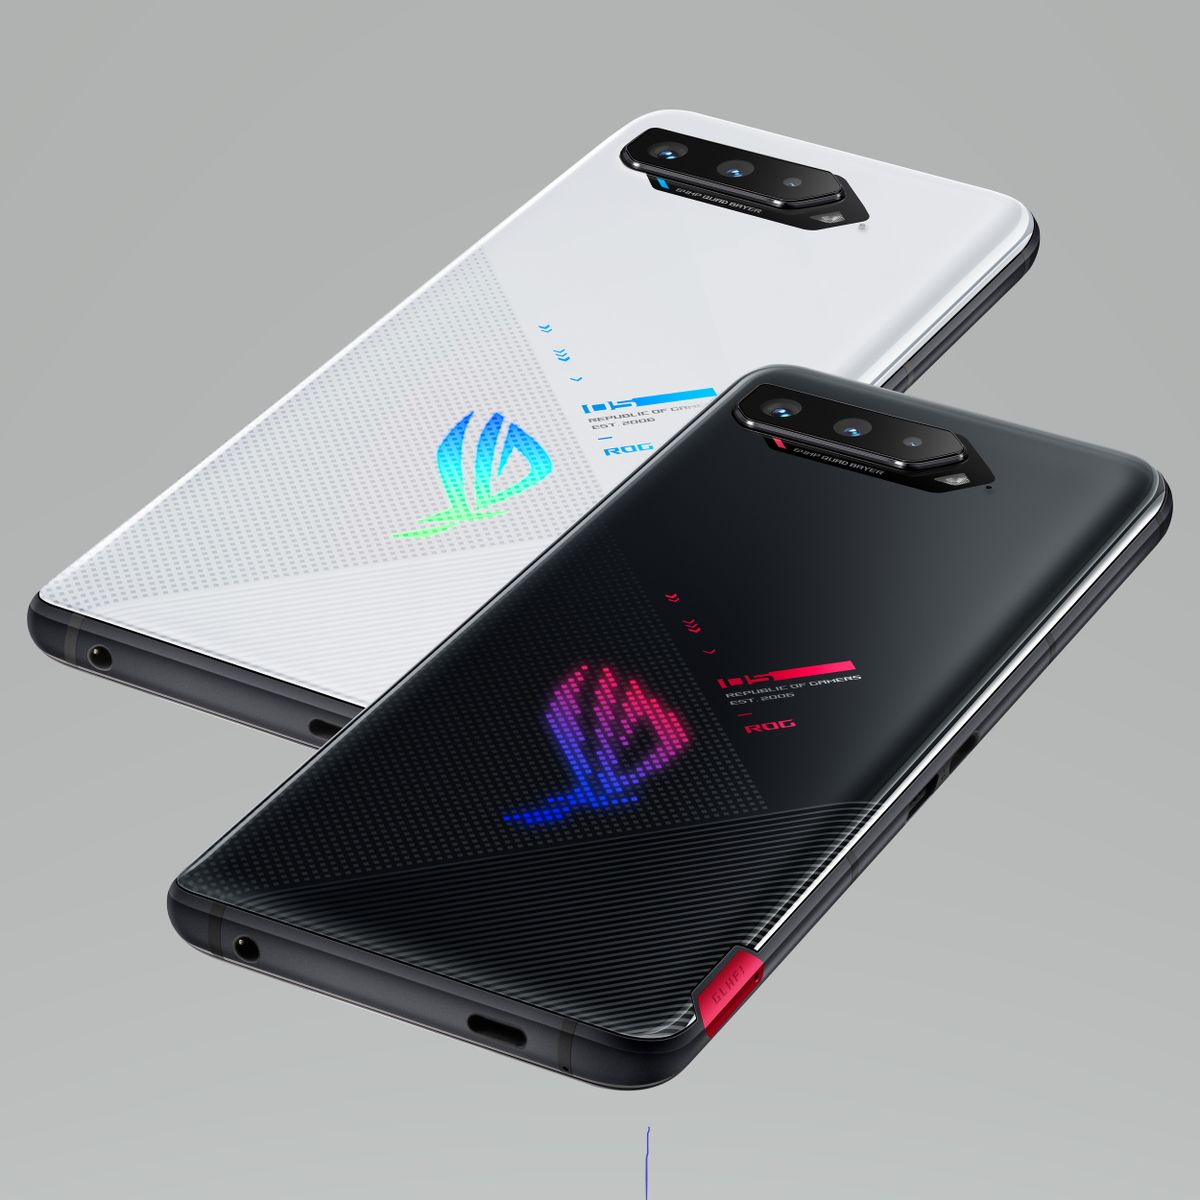 Asus Republic of Gamers presenta la nova sèrie Rog Phone 5